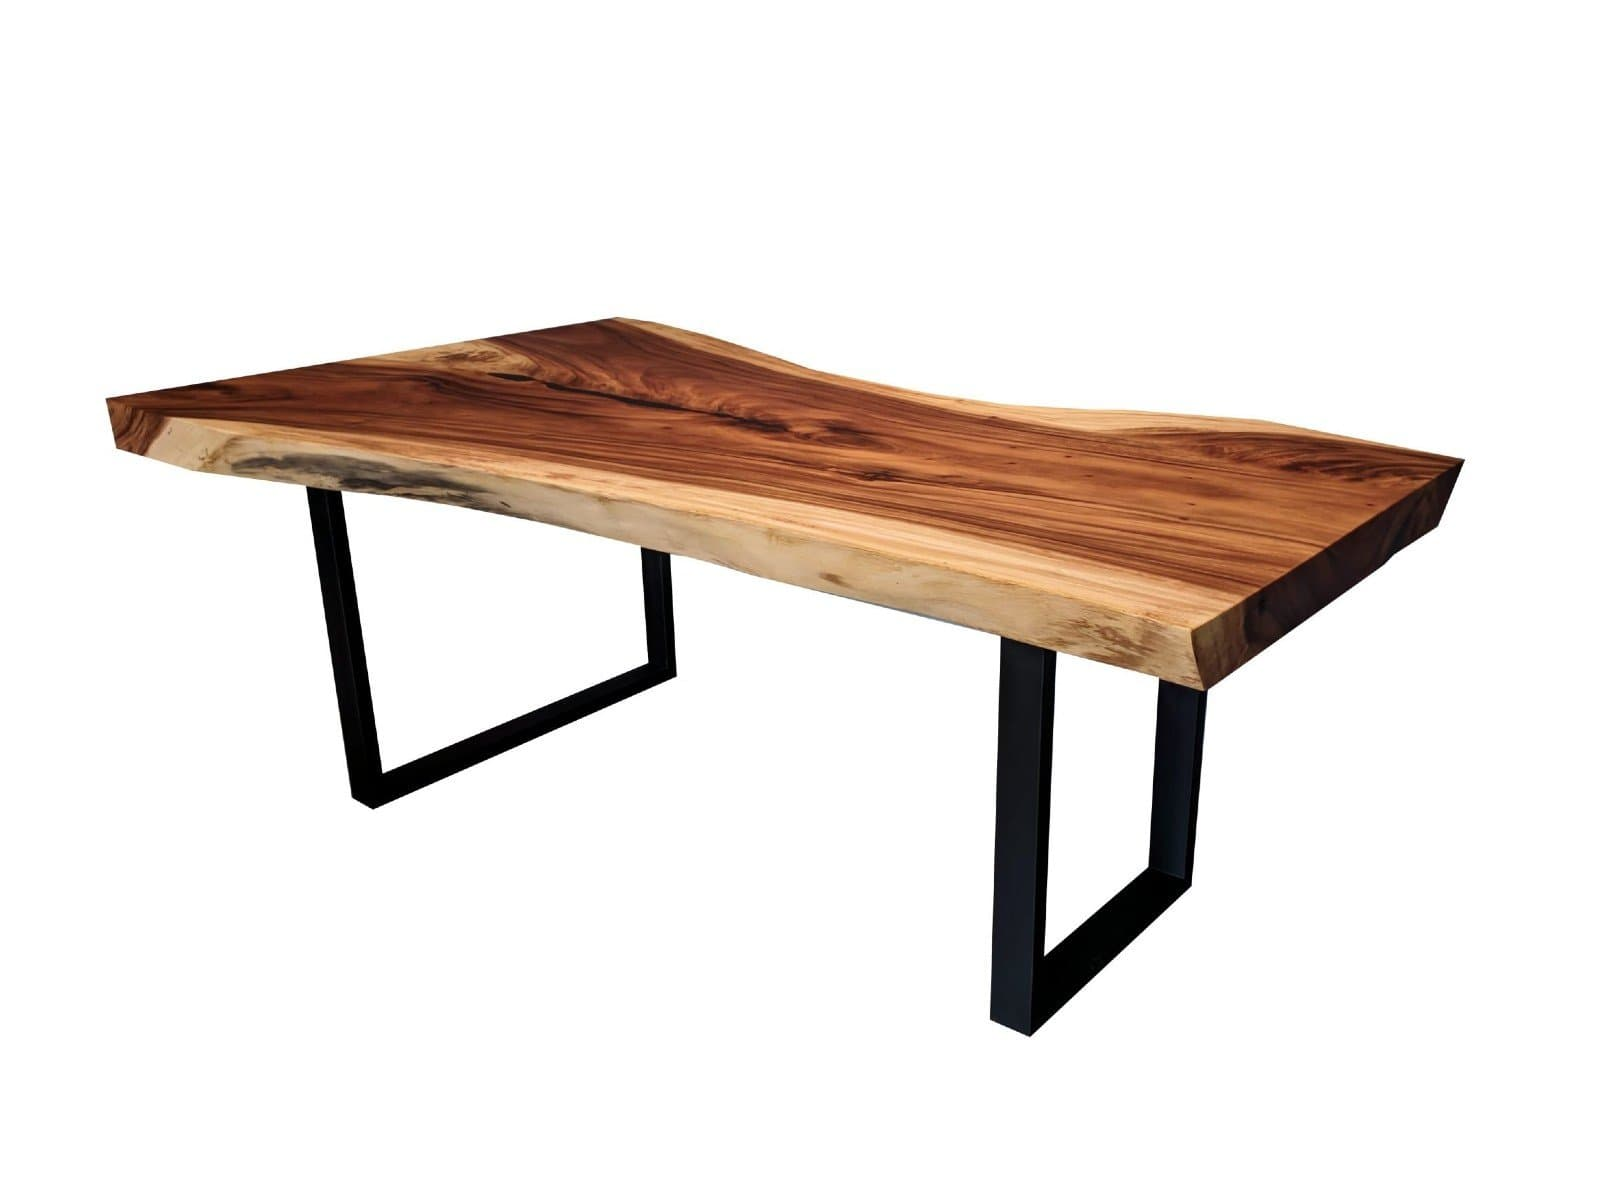 79 By 47 Inch Natural Acacia Wood Slab Dining Table With Metal Legs